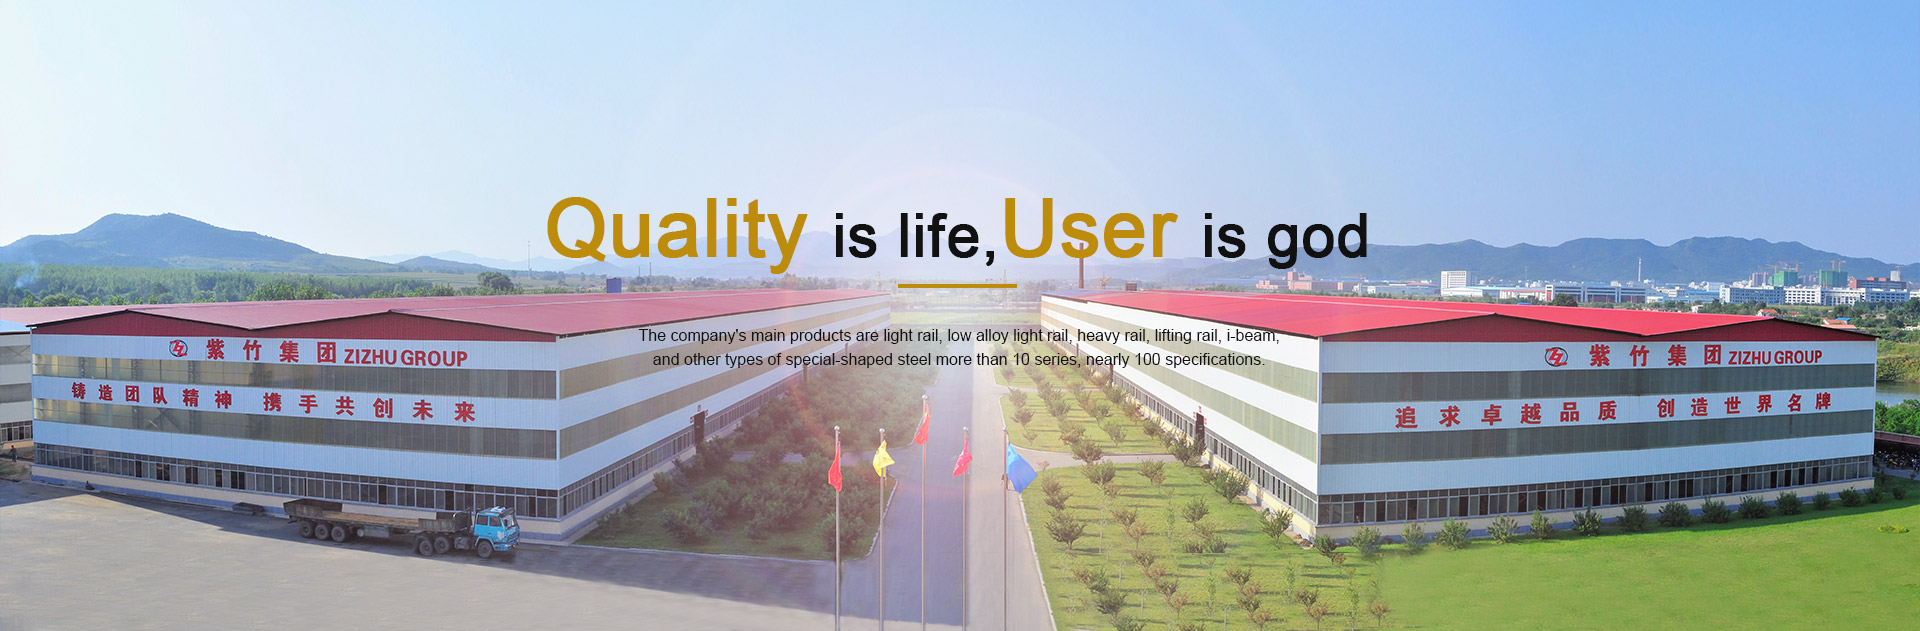 Quality is life,User is god